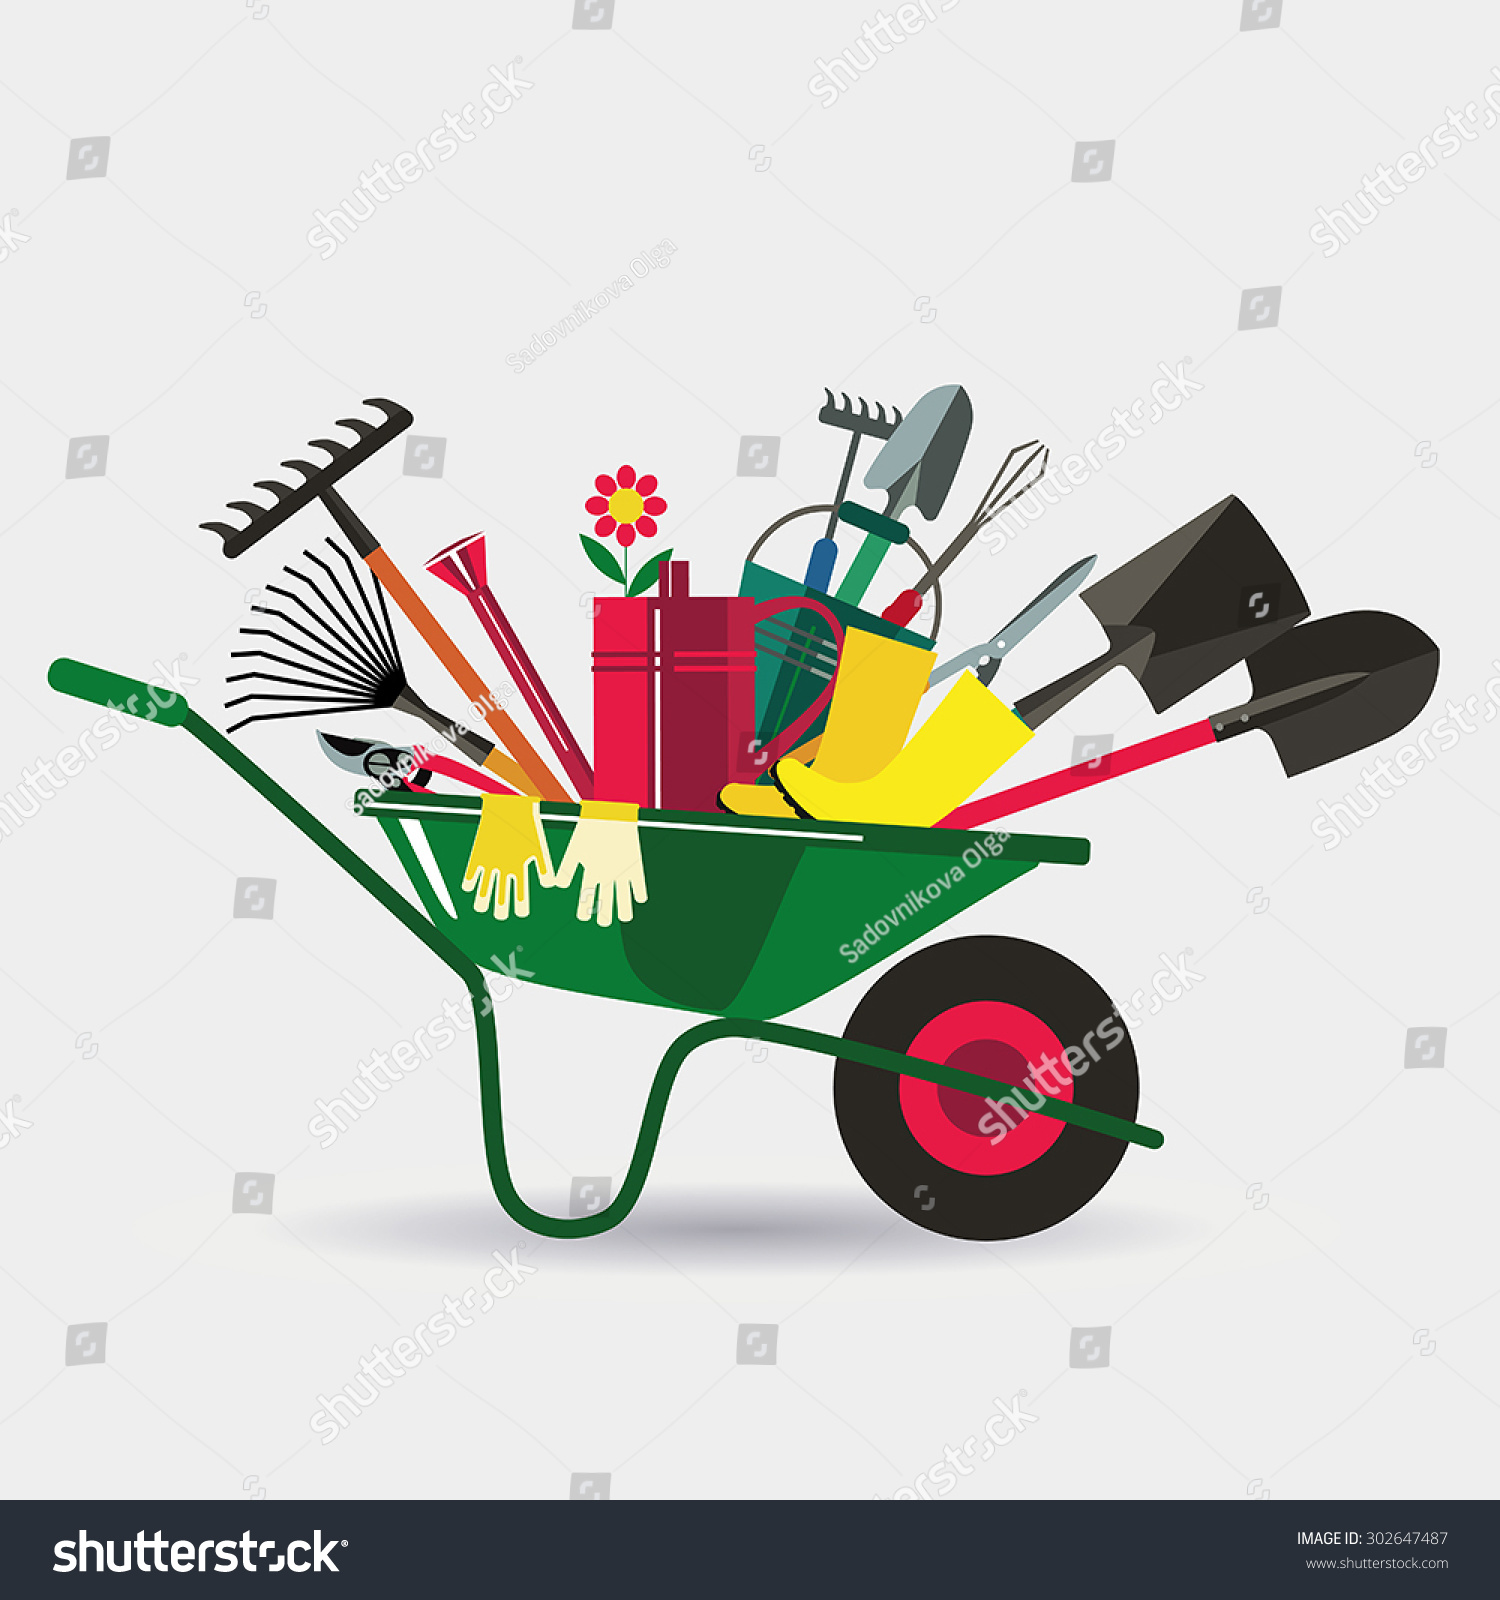 Organic farming wheelbarrow tools work garden stock vector for Gardening tools cartoon